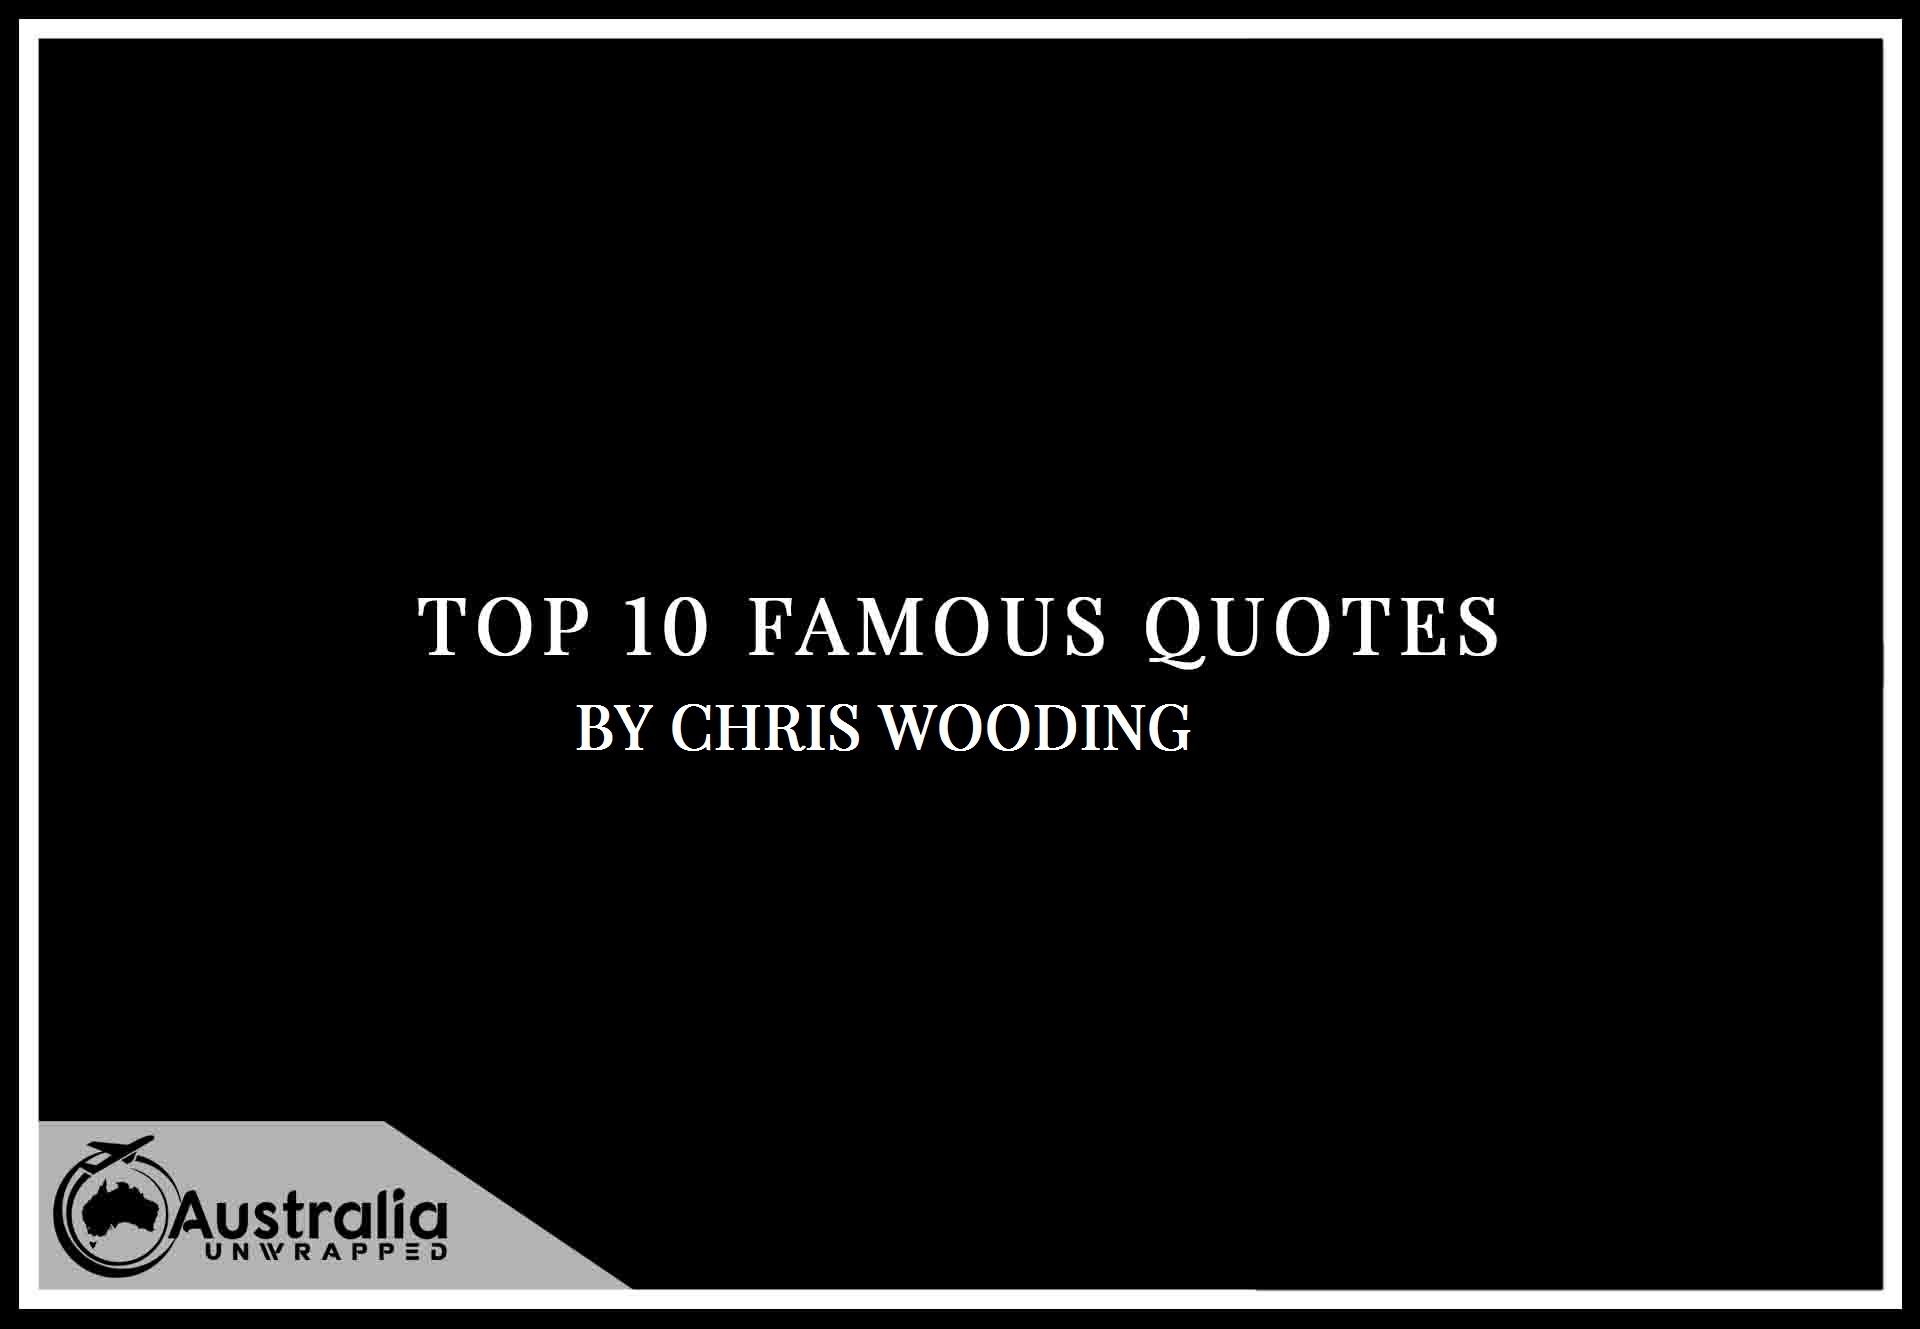 Chris Wooding's Top 10 Popular and Famous Quotes